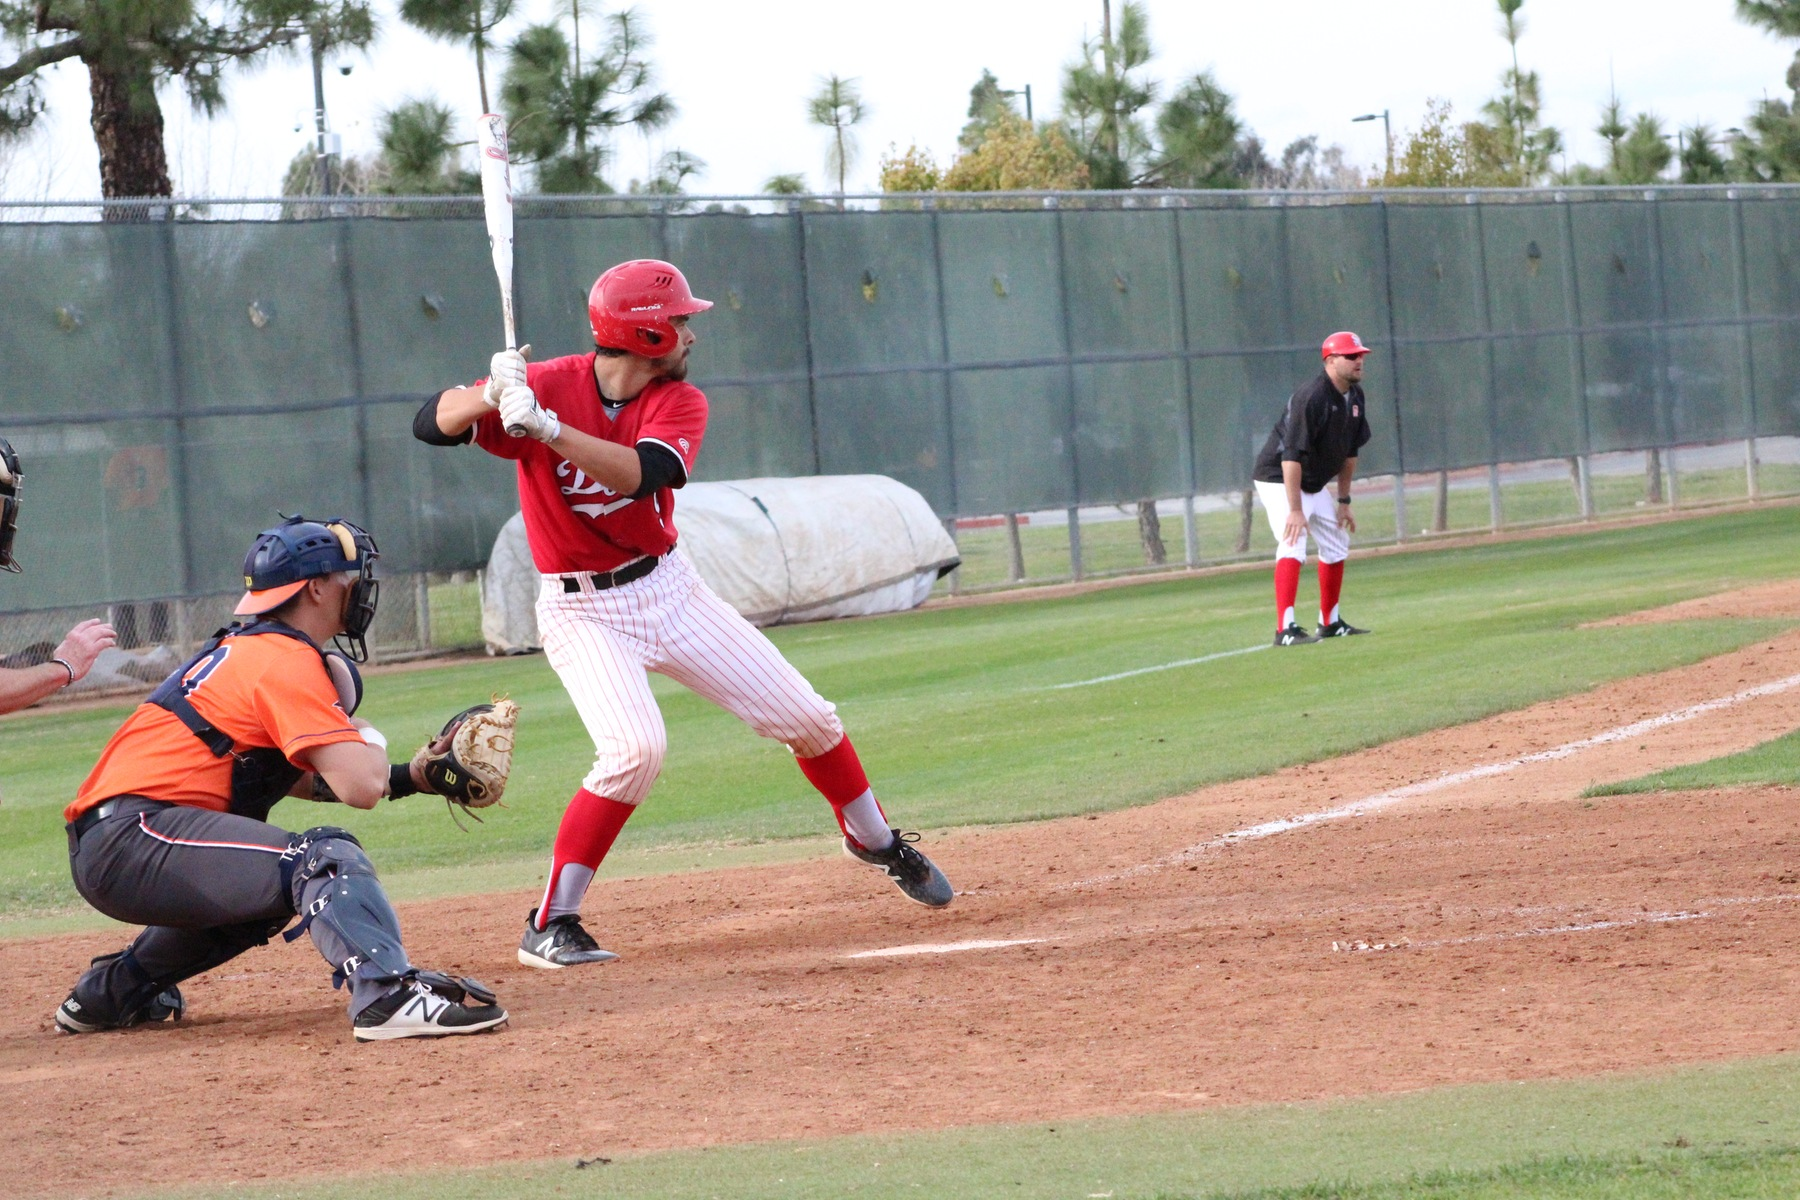 Dons Drop Series Finale to OCC, 16-11